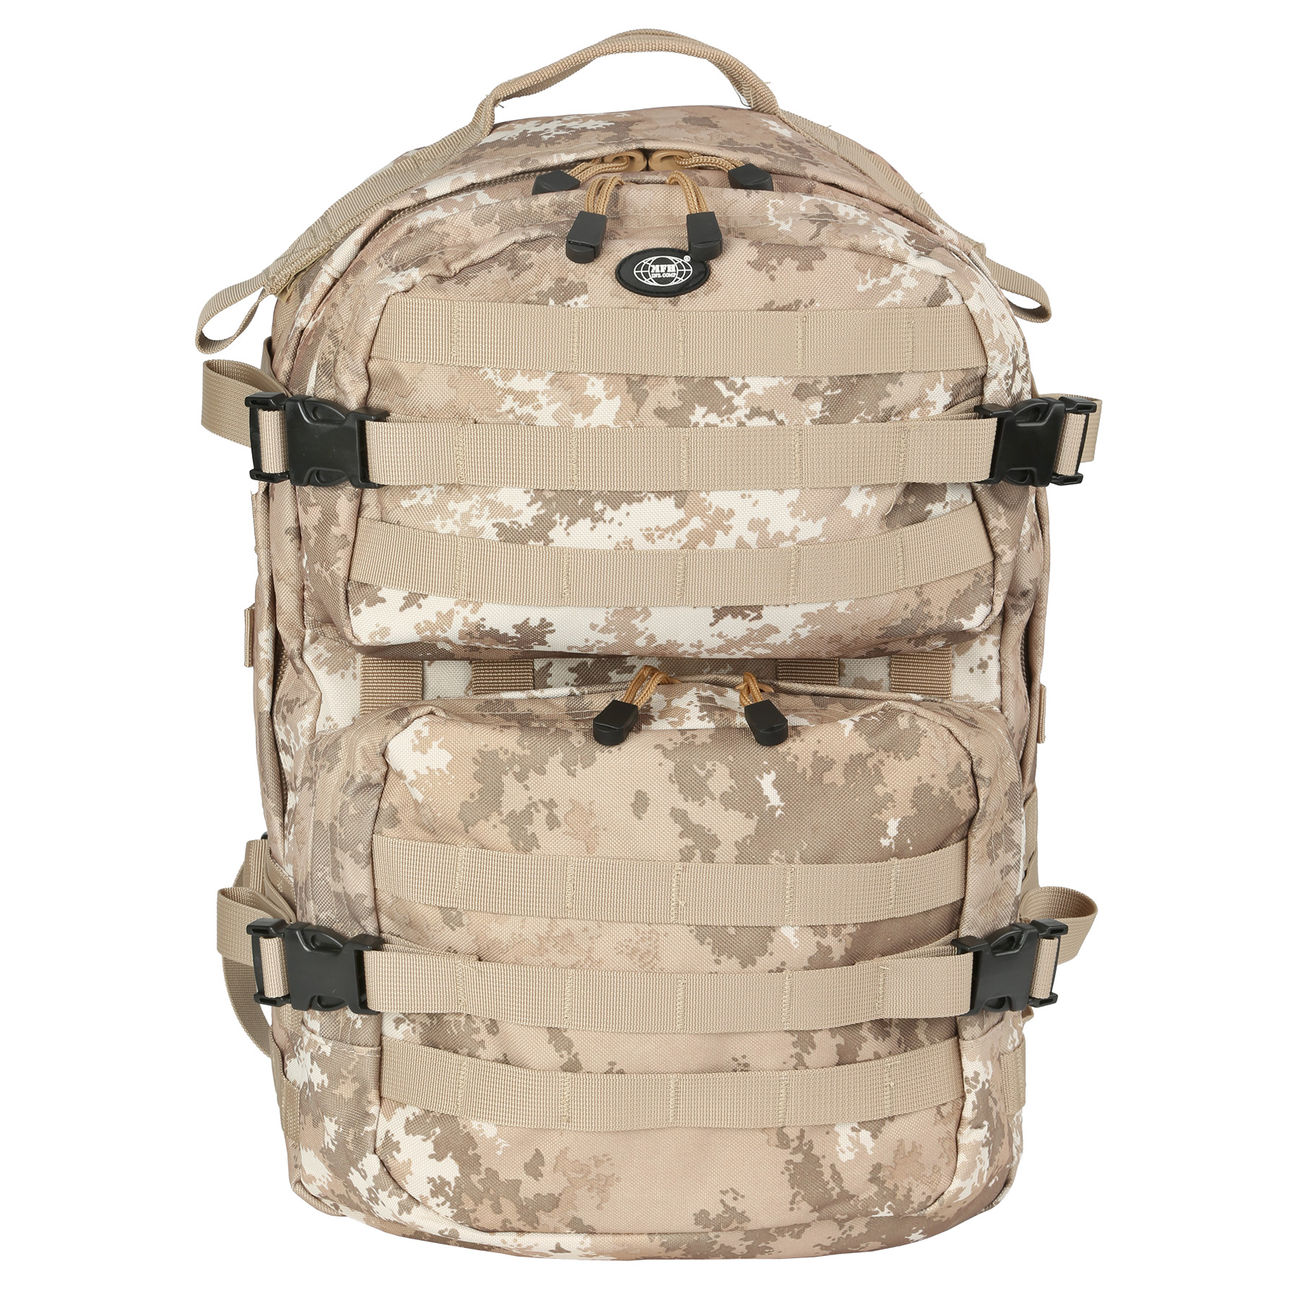 MFH Rucksack US Assault II vegetato desert 6